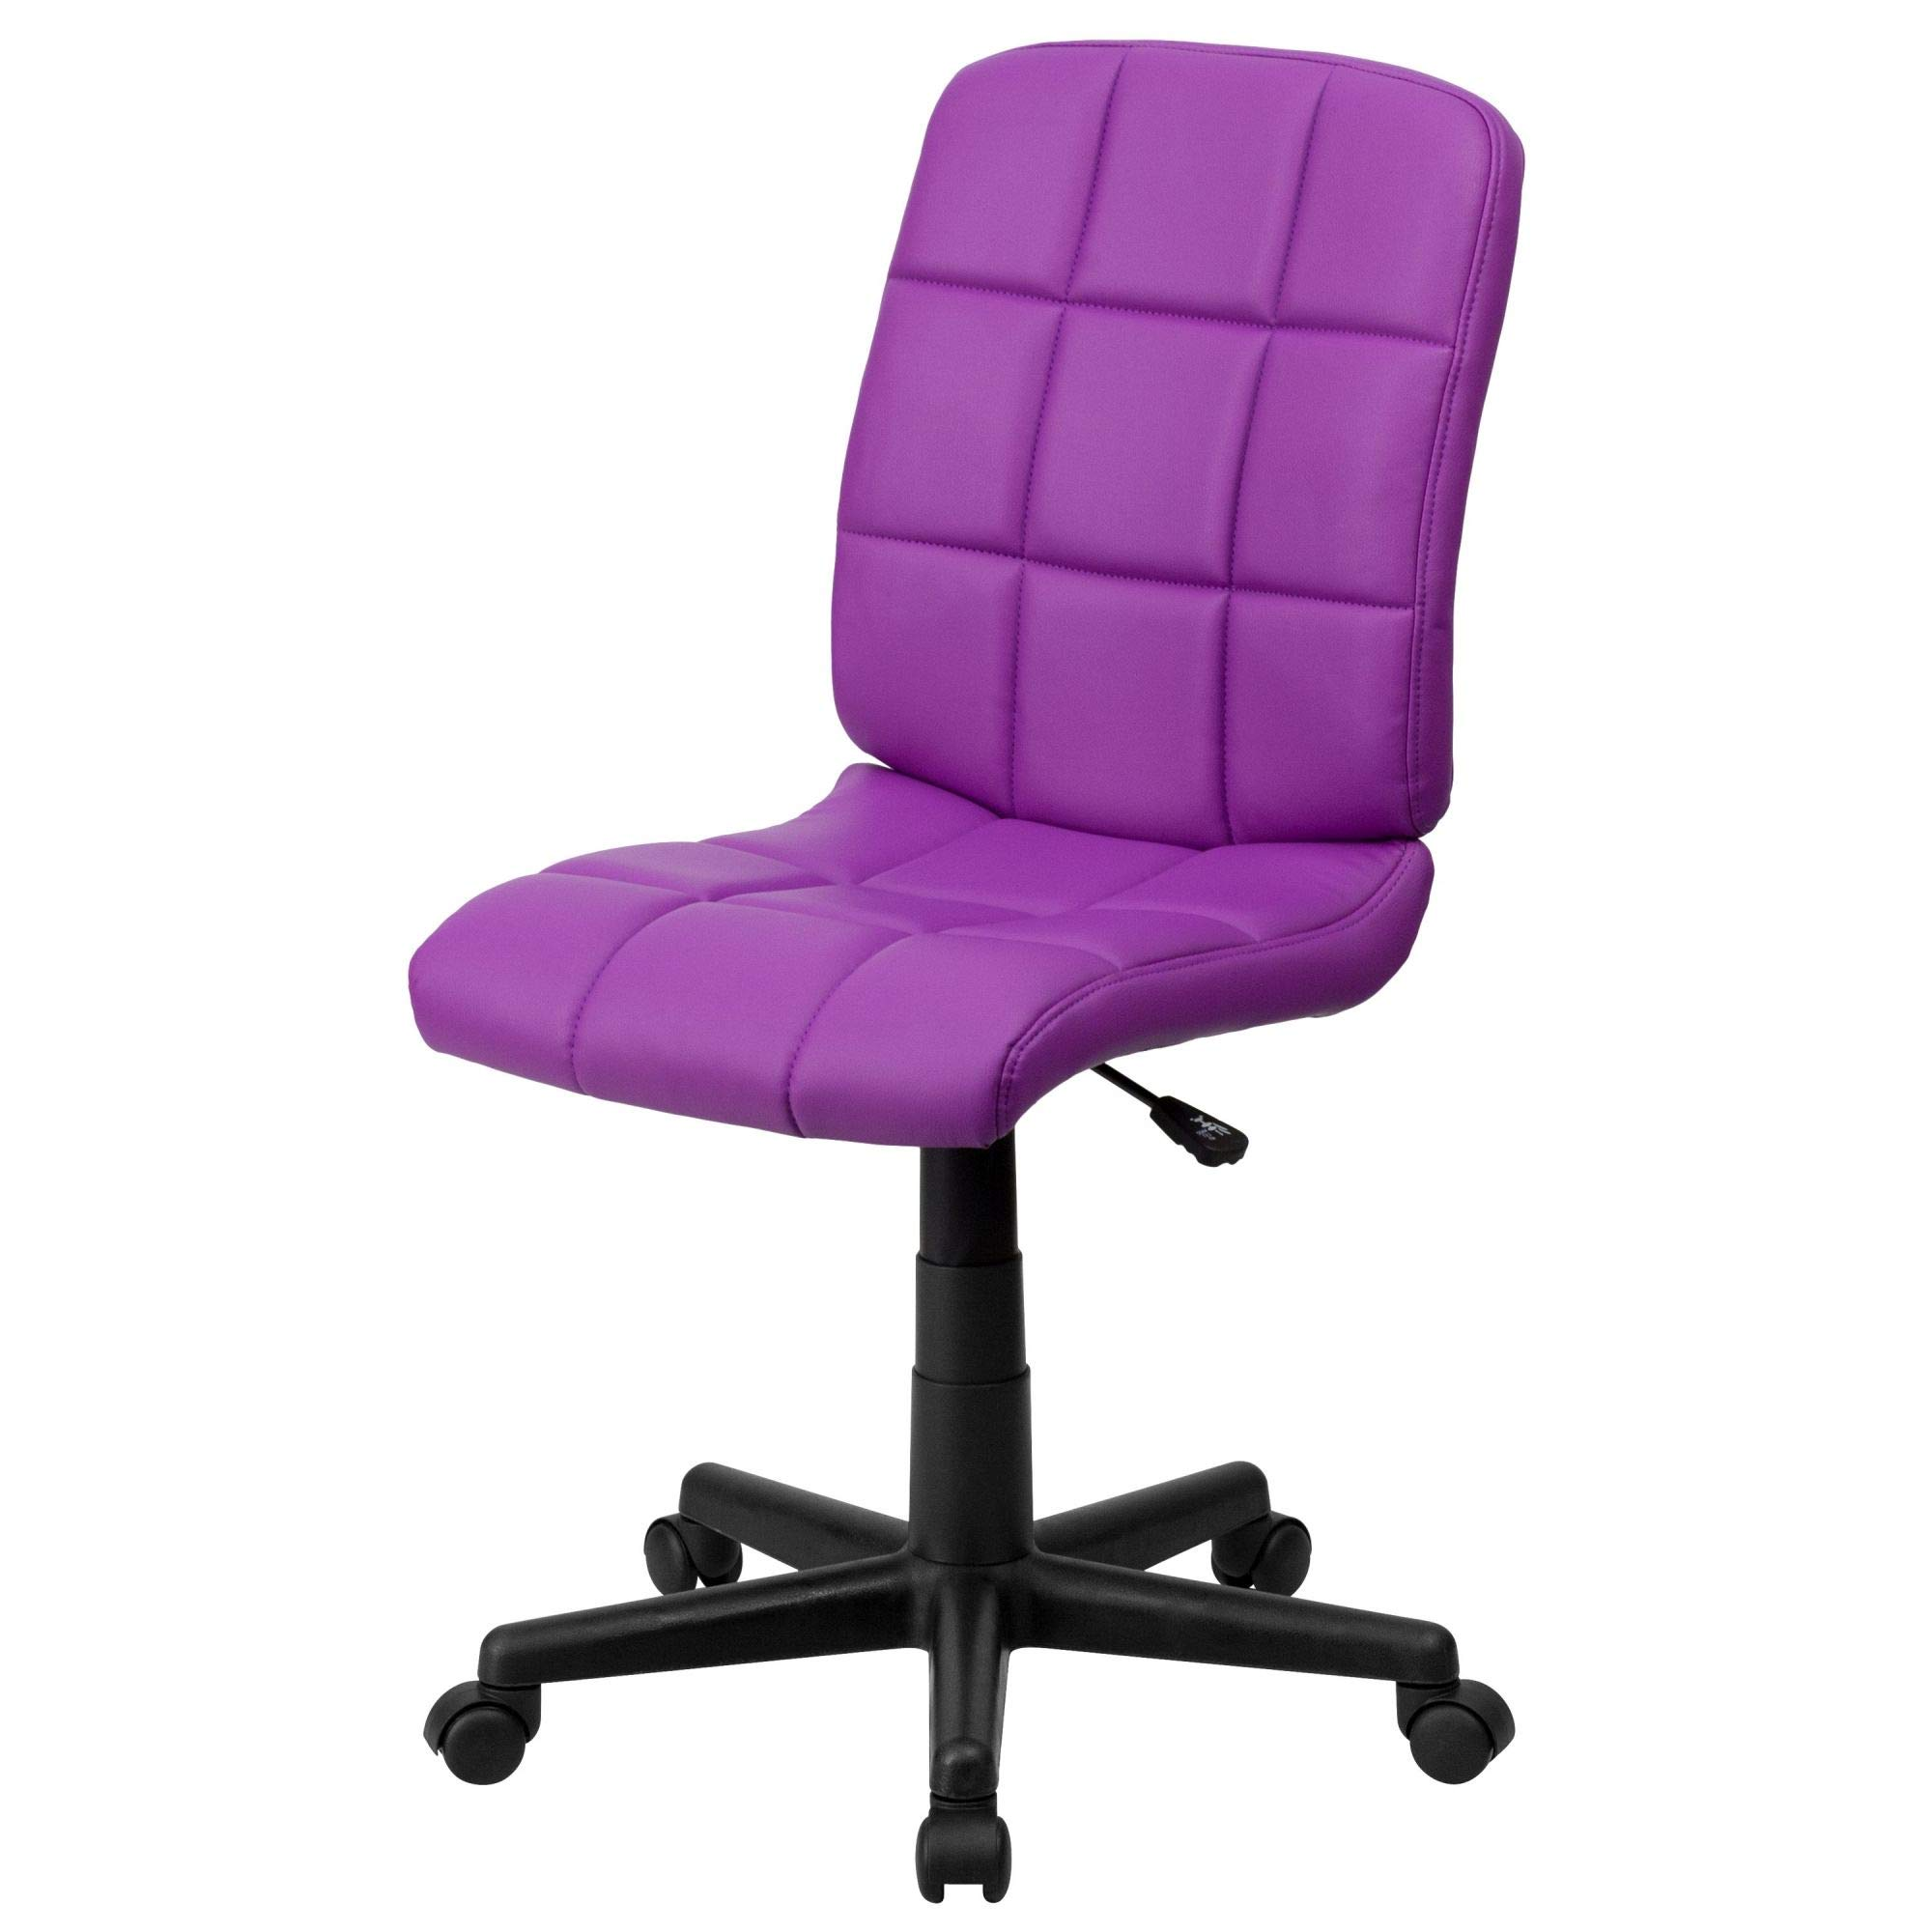 Delacora GO-1691-1-PUR-GG 23 Inch Wide Vinyl Swivel Task Chair